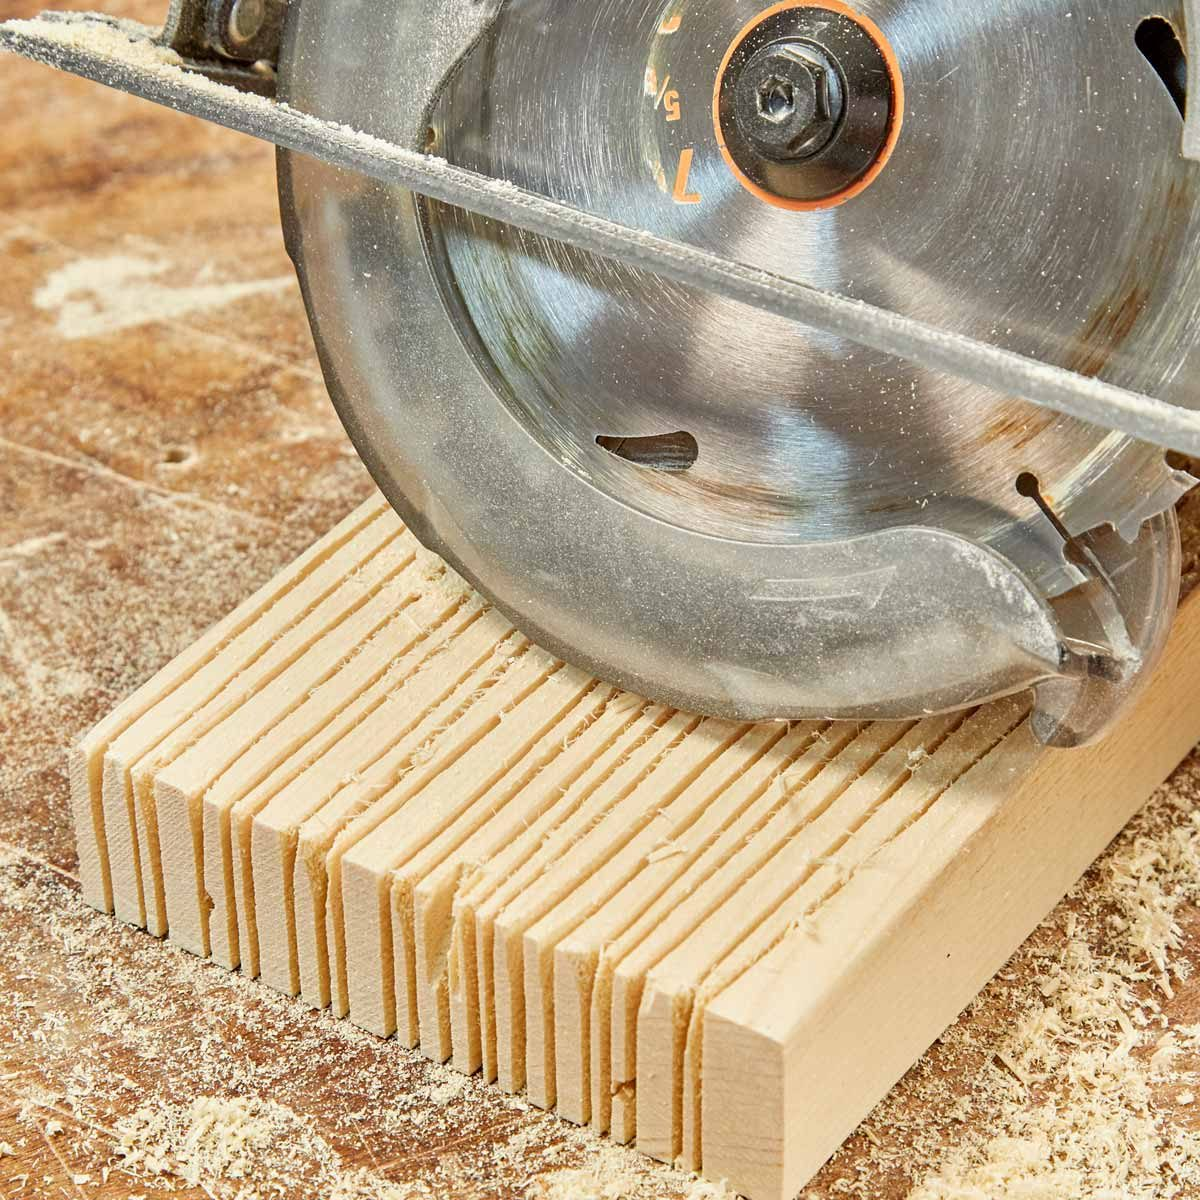 make your own shims 2